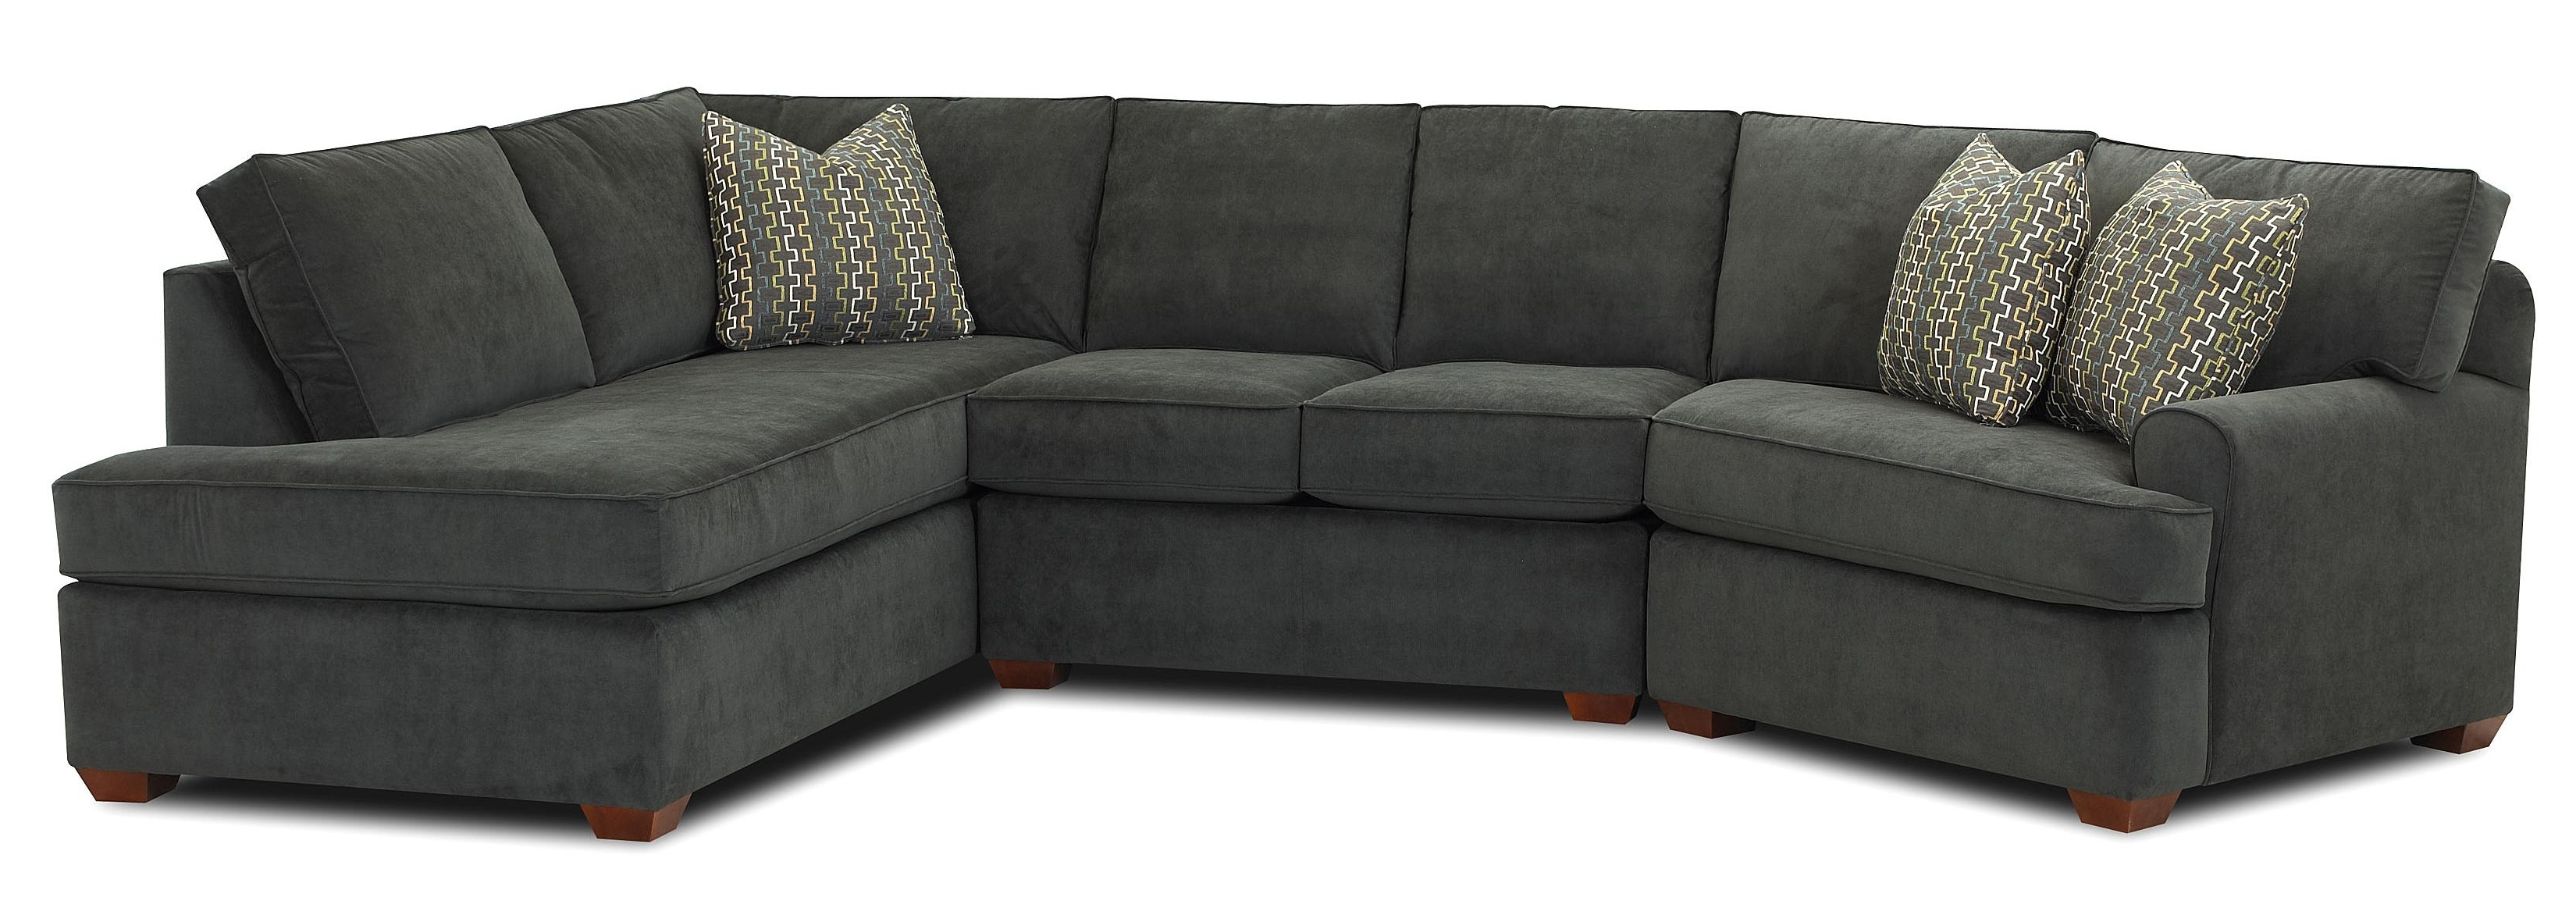 Sectional Sofa Design: Elegant Sectional Sofas Chaise Chaise Pertaining To Trendy Sectional Chaise Sofas (View 8 of 15)